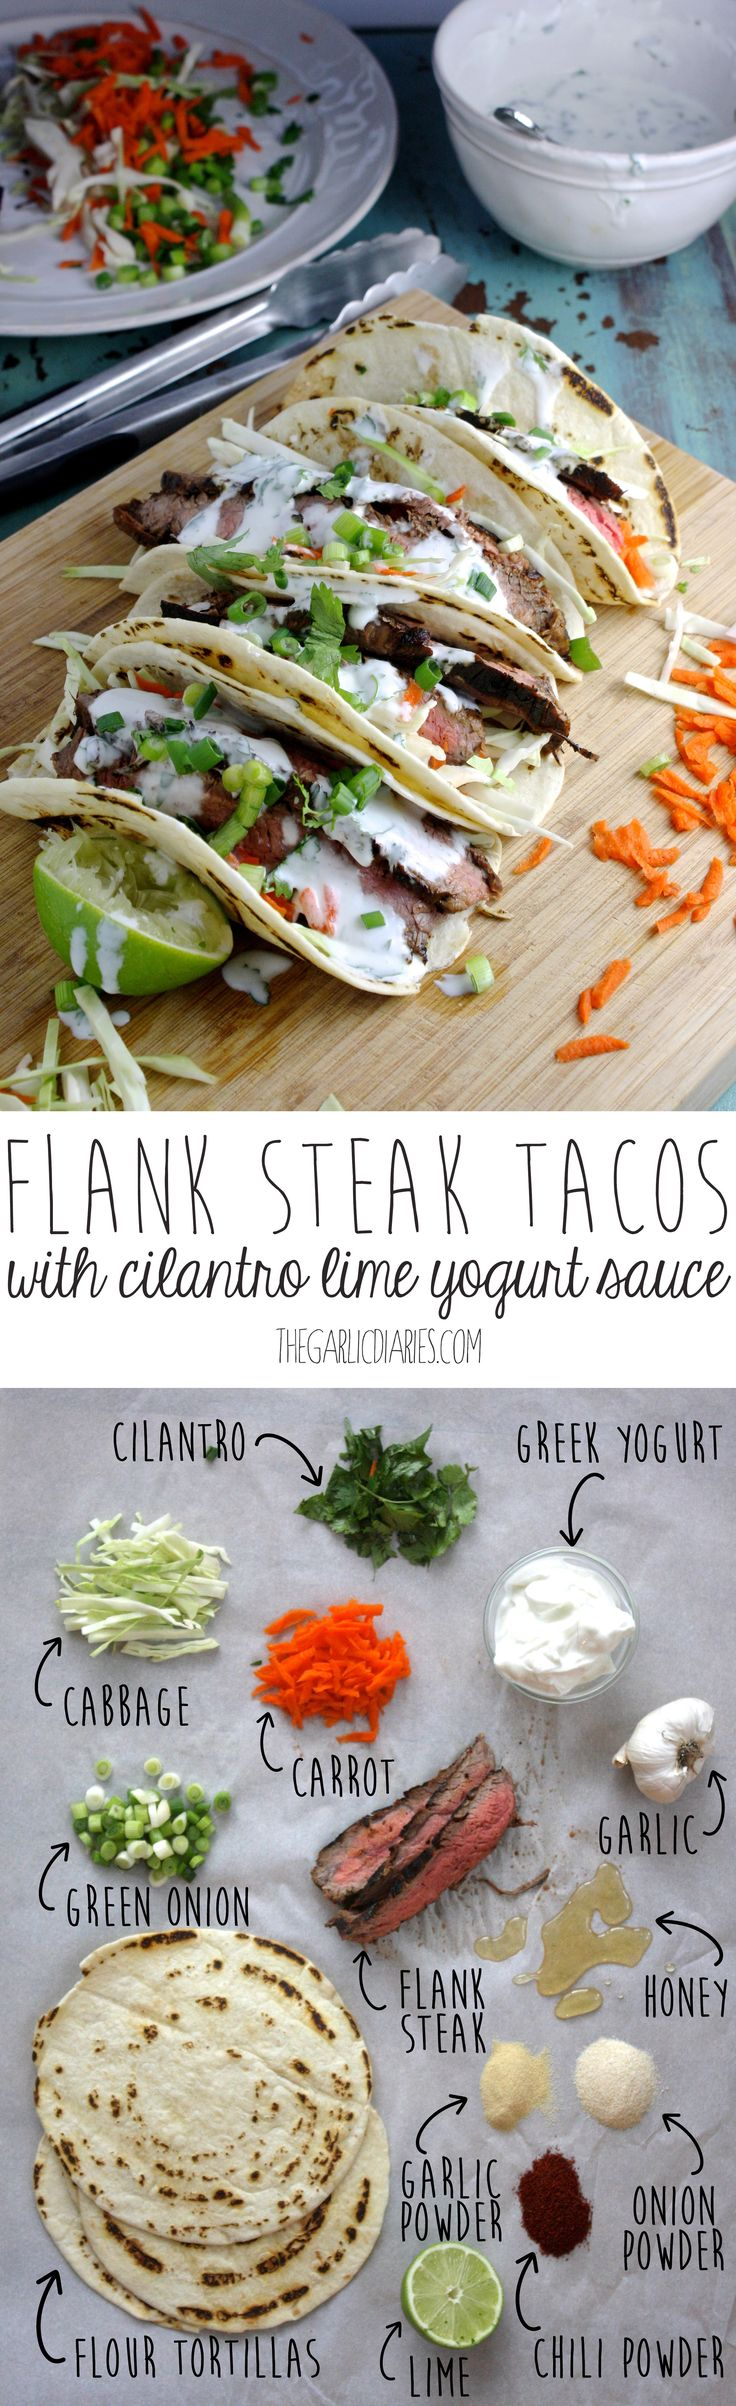 by Flank Steak Tacos with Cilantro Lime Yogurt Sauce by thegarlicdiaries #Tacos #Beef #Healthy #Fresh